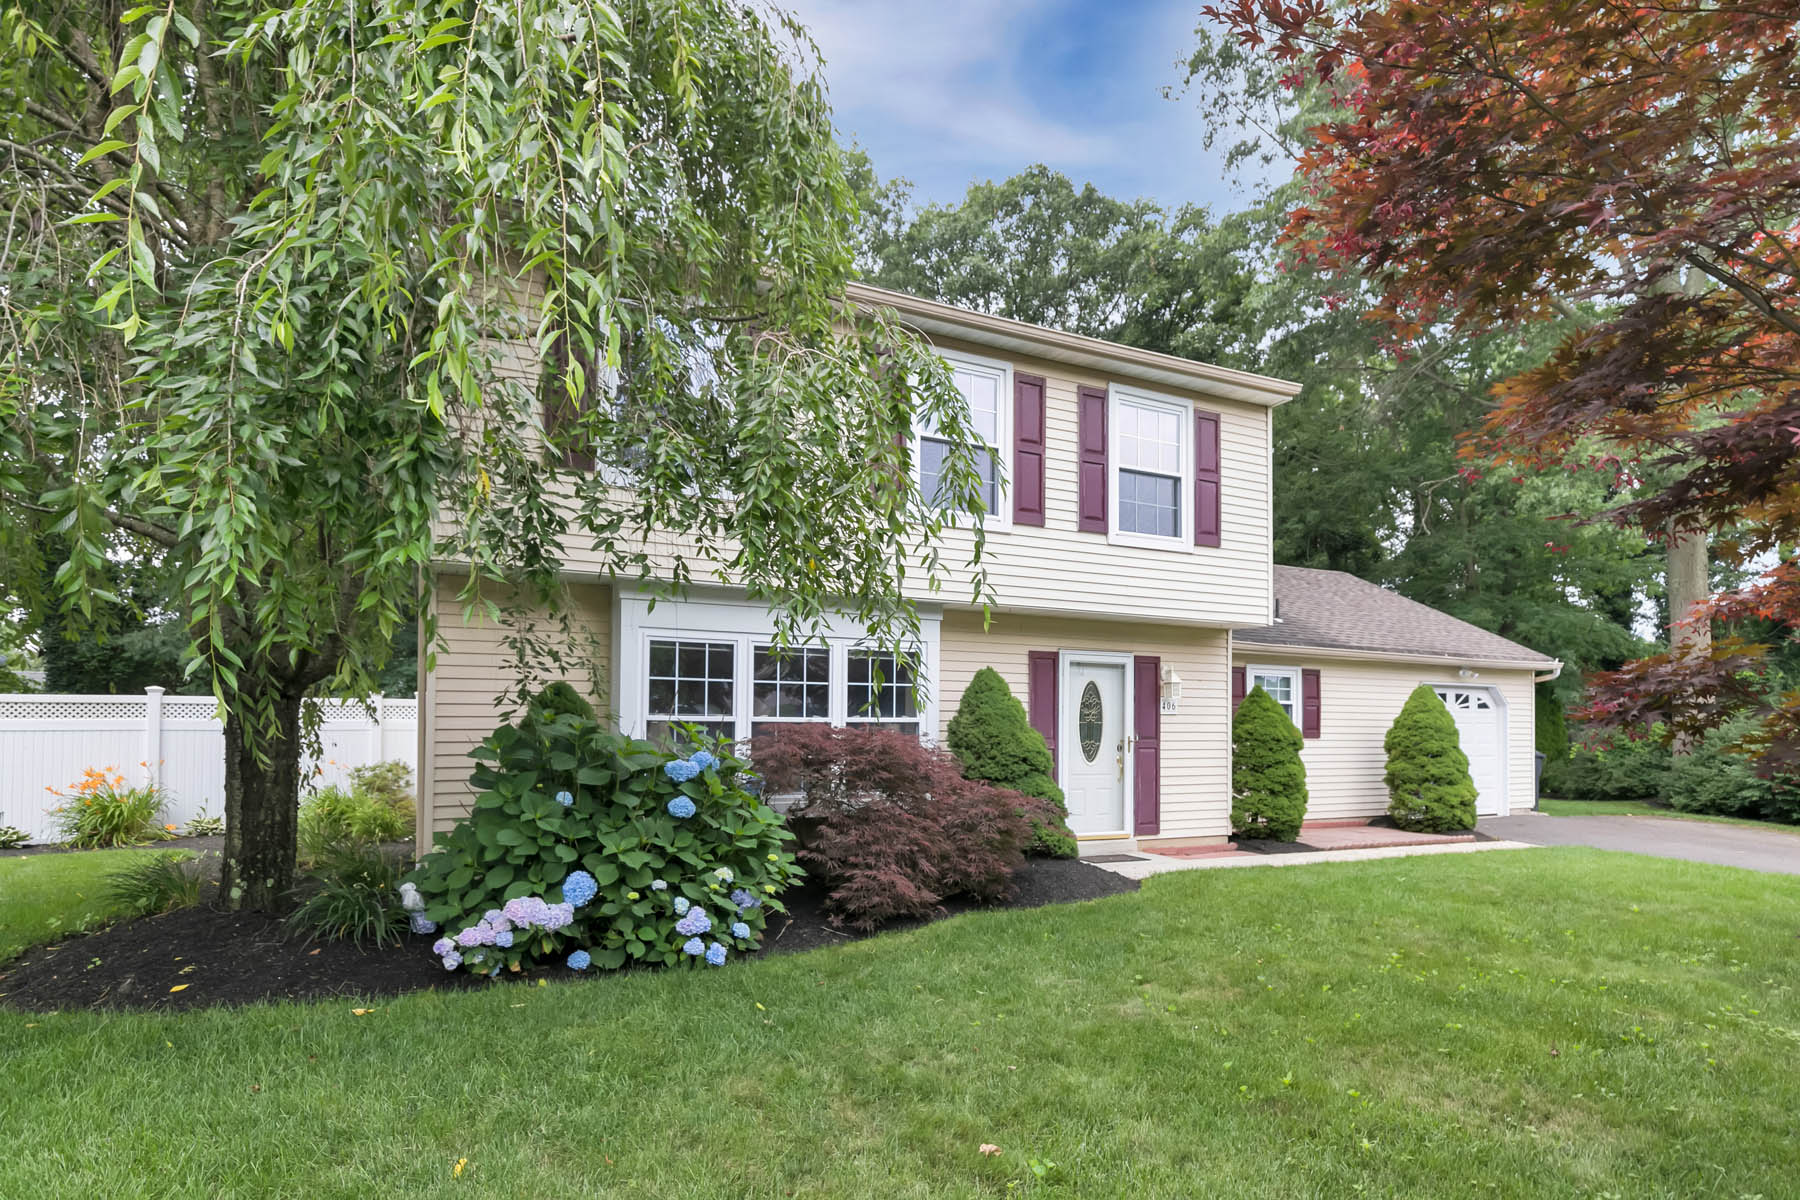 Single Family Homes for Sale at Great Colonial At The End Of The Cul-de-sac 406 Cheyenne Court Toms River, New Jersey 08755 United States